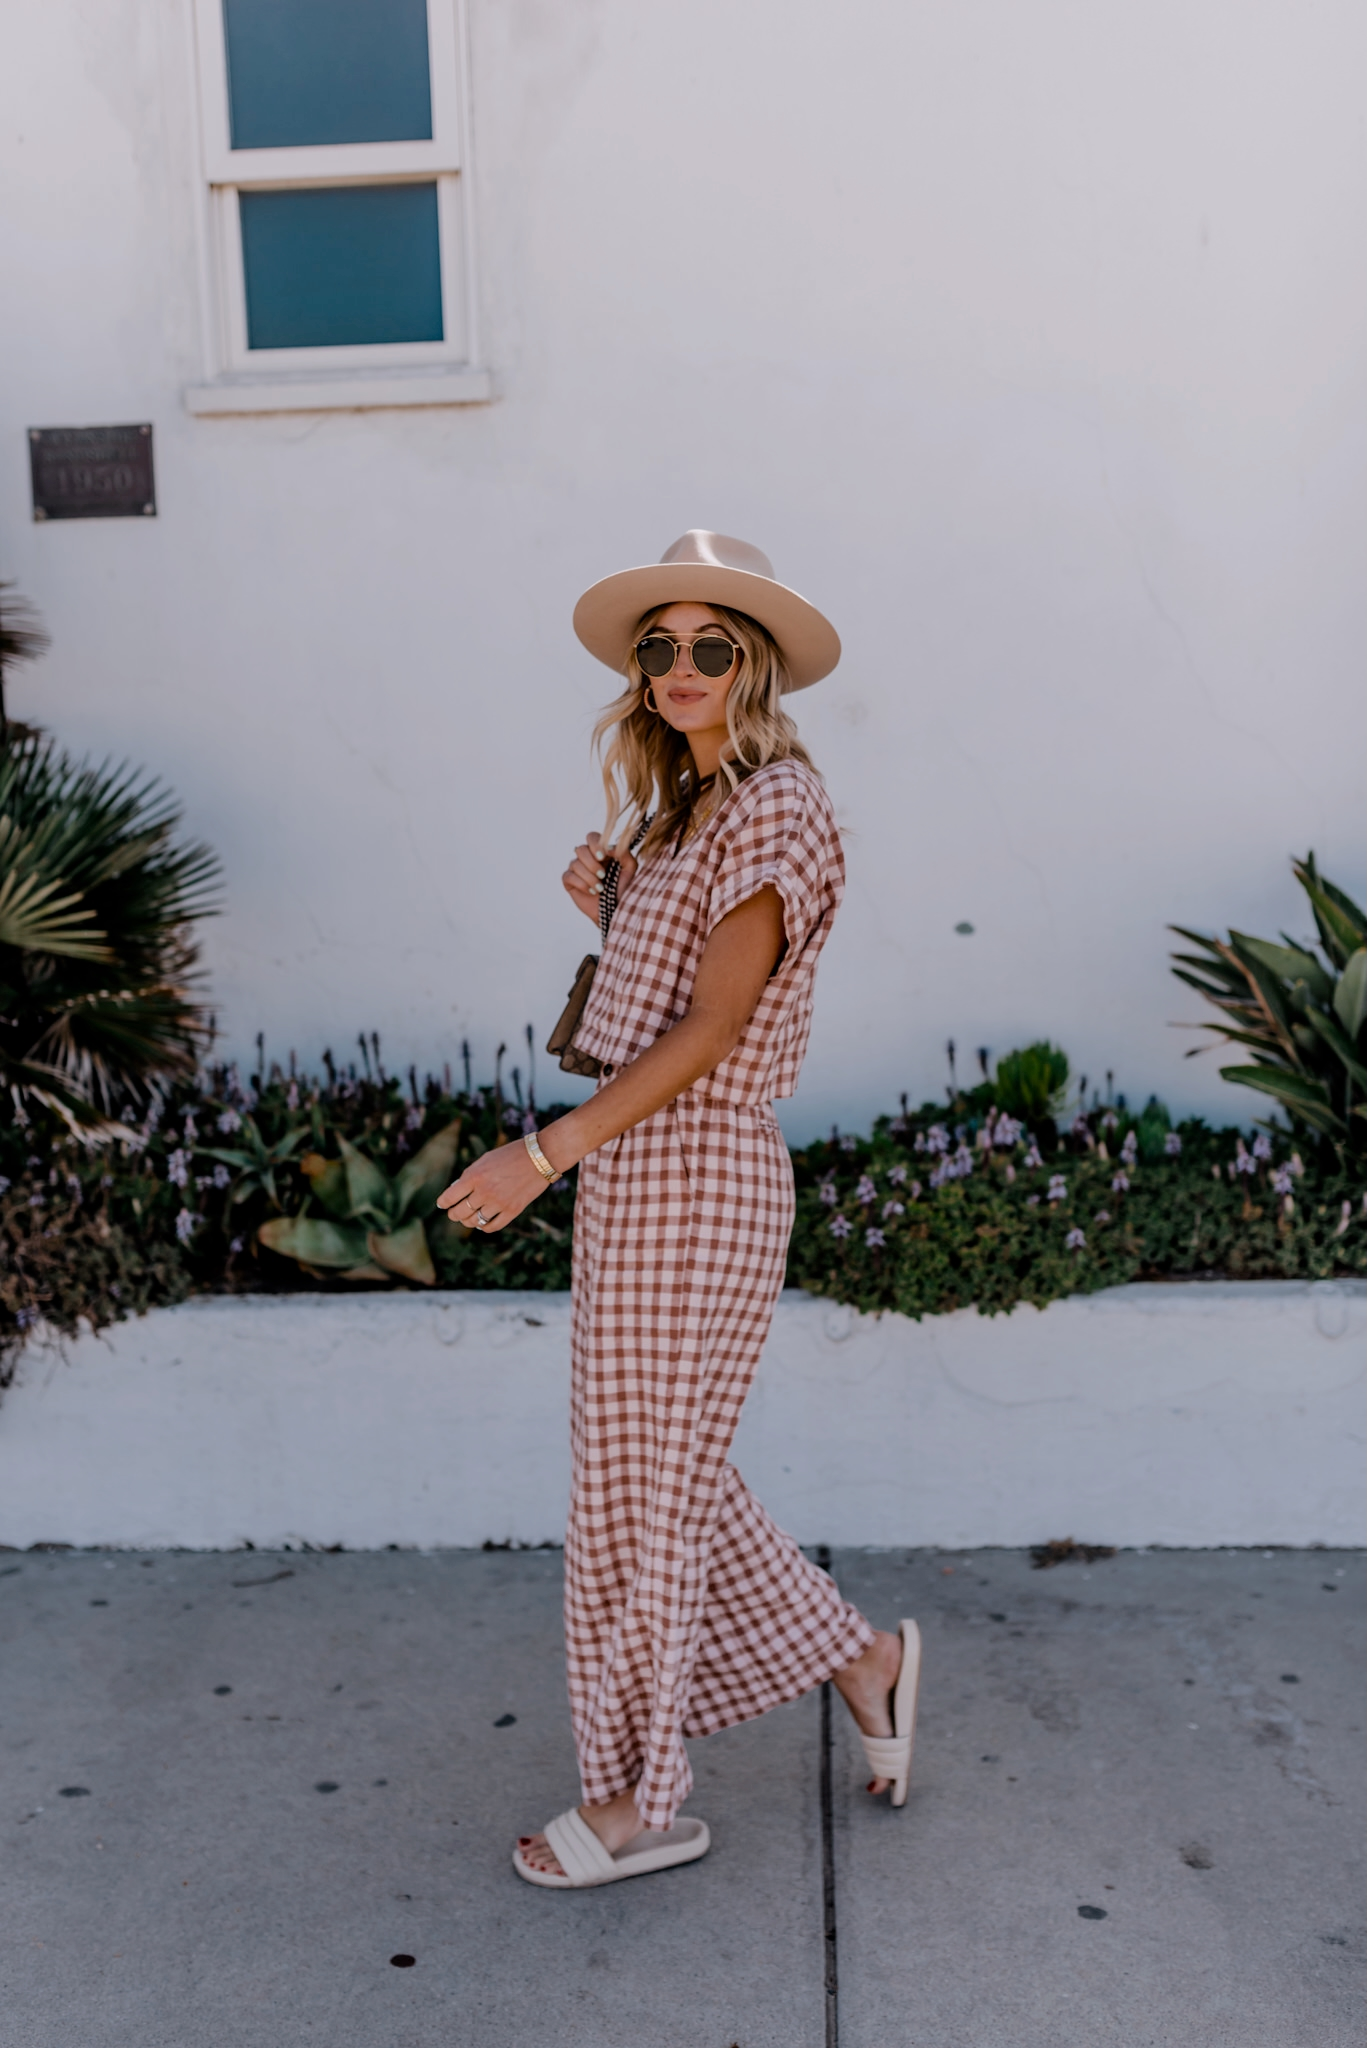 woman wearing checkered clothes and a hat